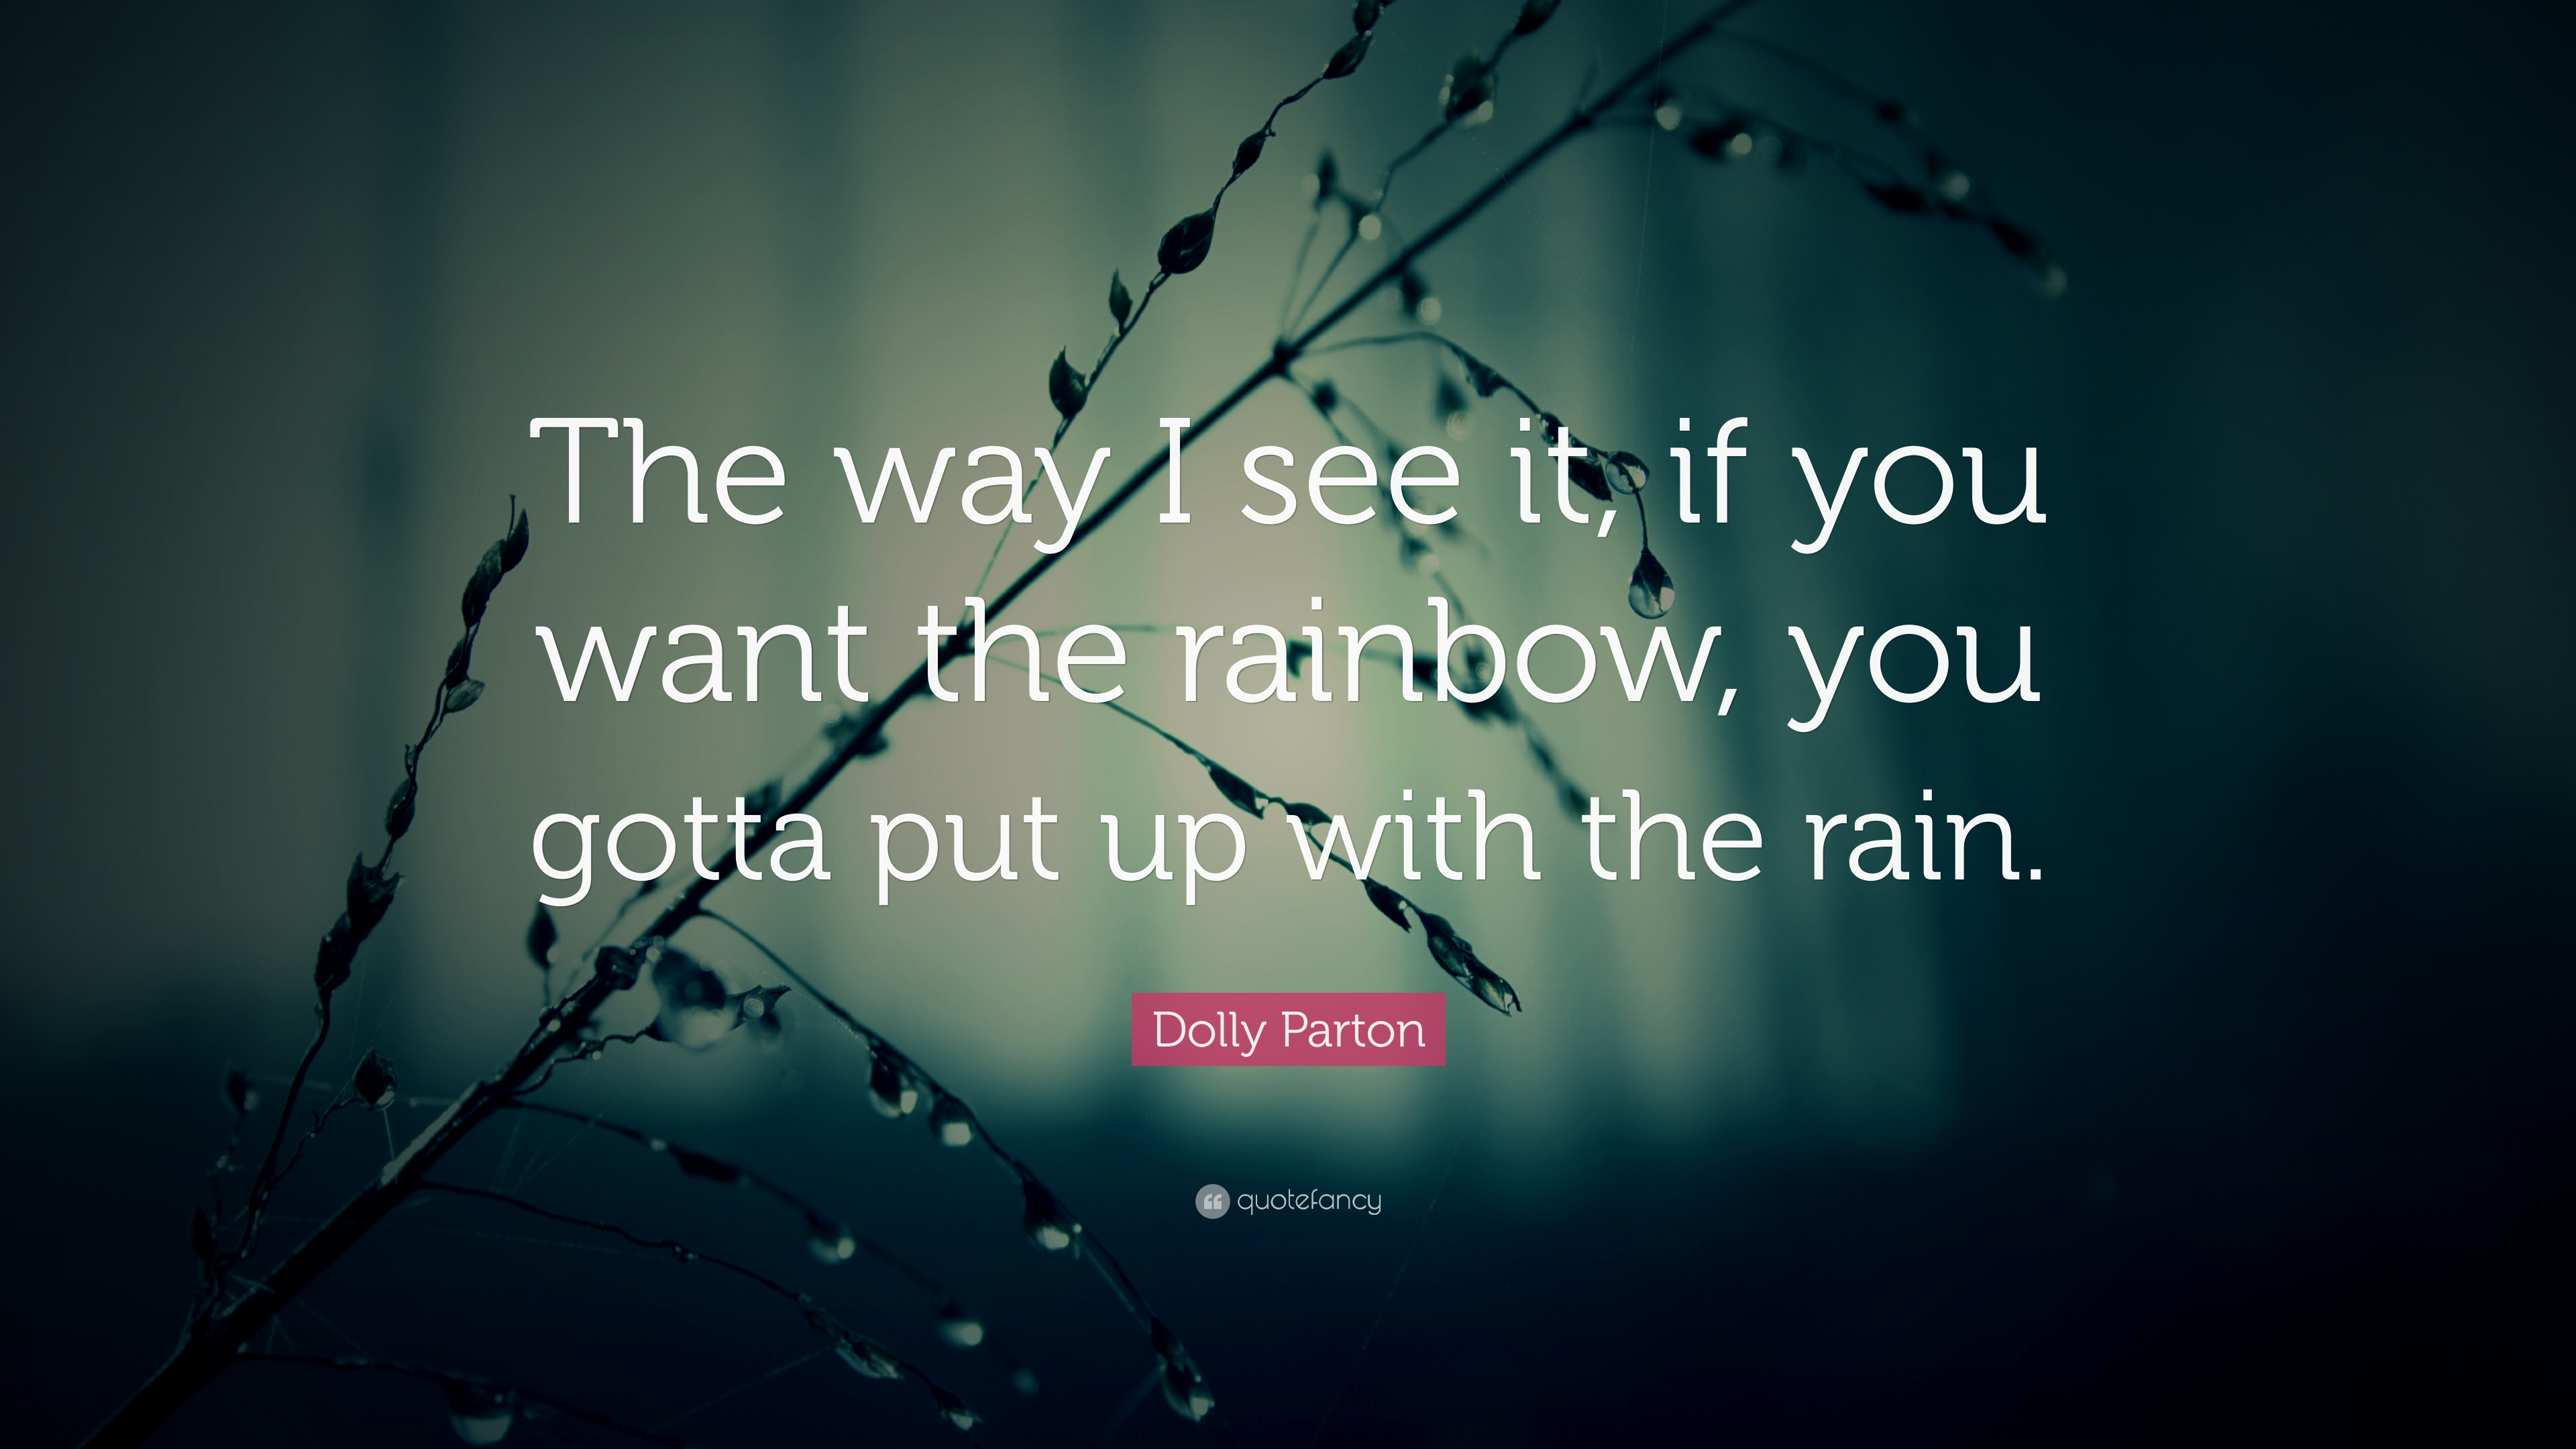 Dolly Parton Quote: U201cThe Way I See It, If You Want The Rainbow